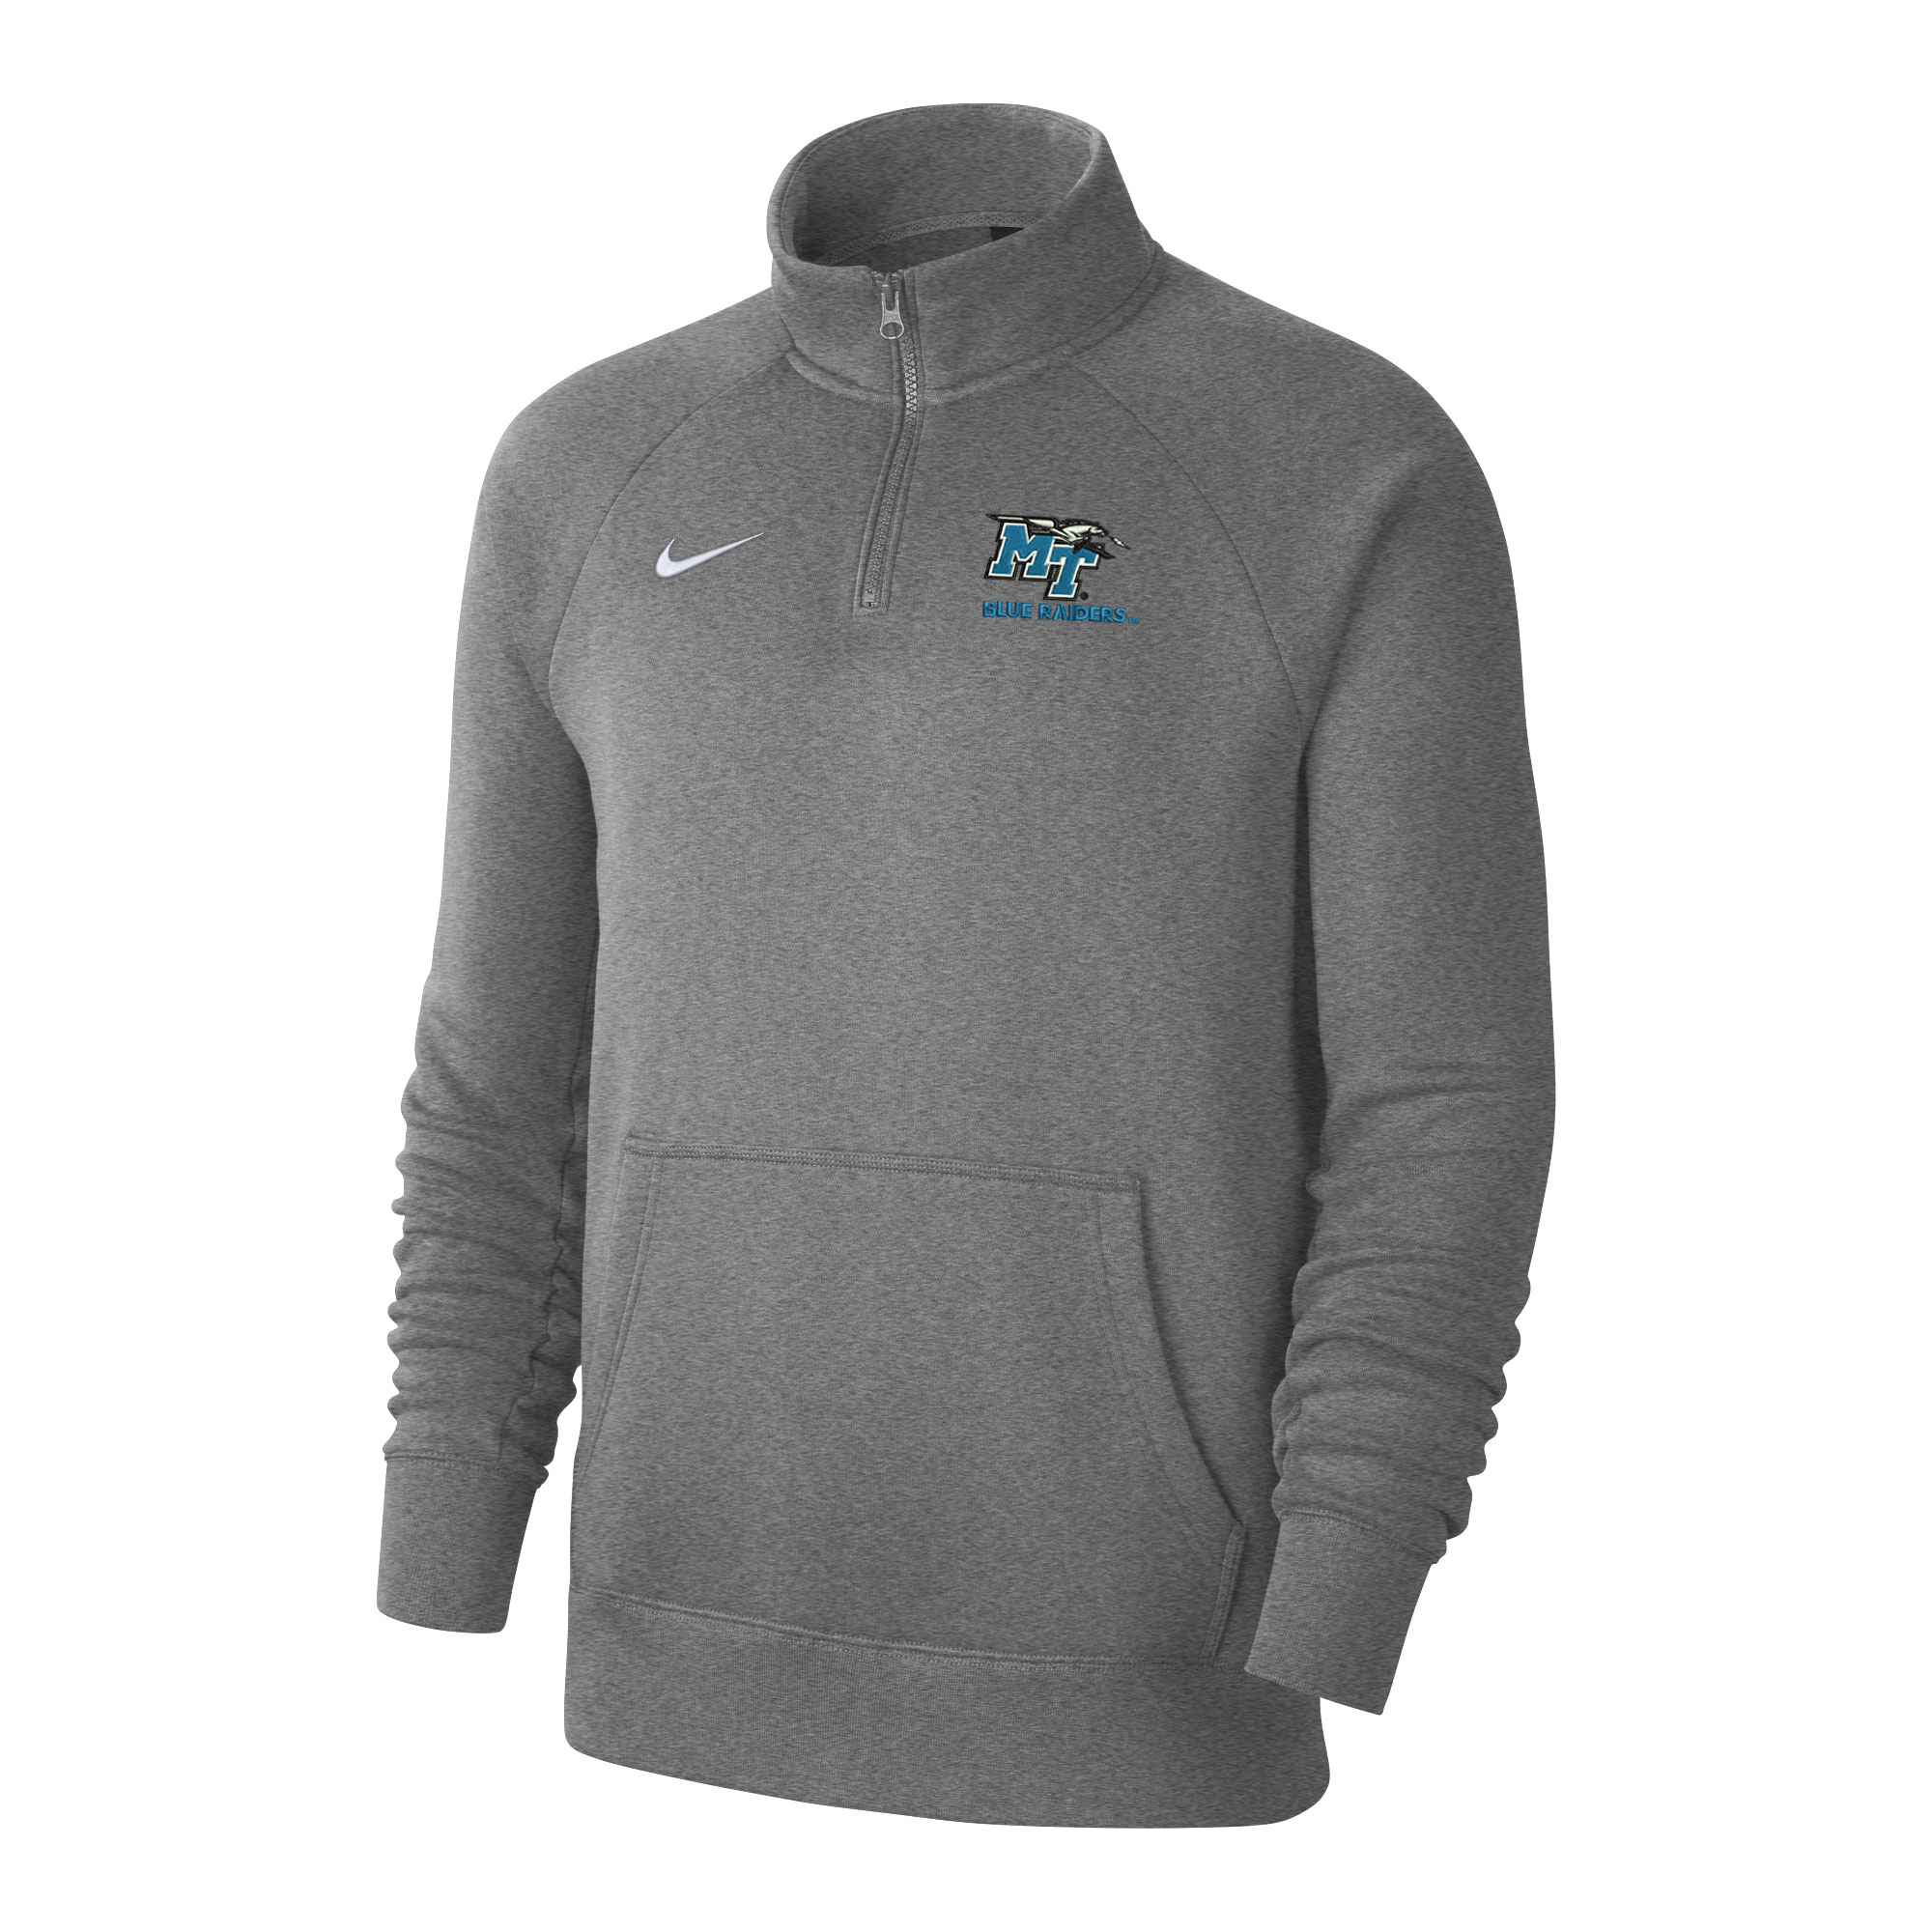 MT Blue Raiders Club 1/4 Zip Nike® Sweatshirt